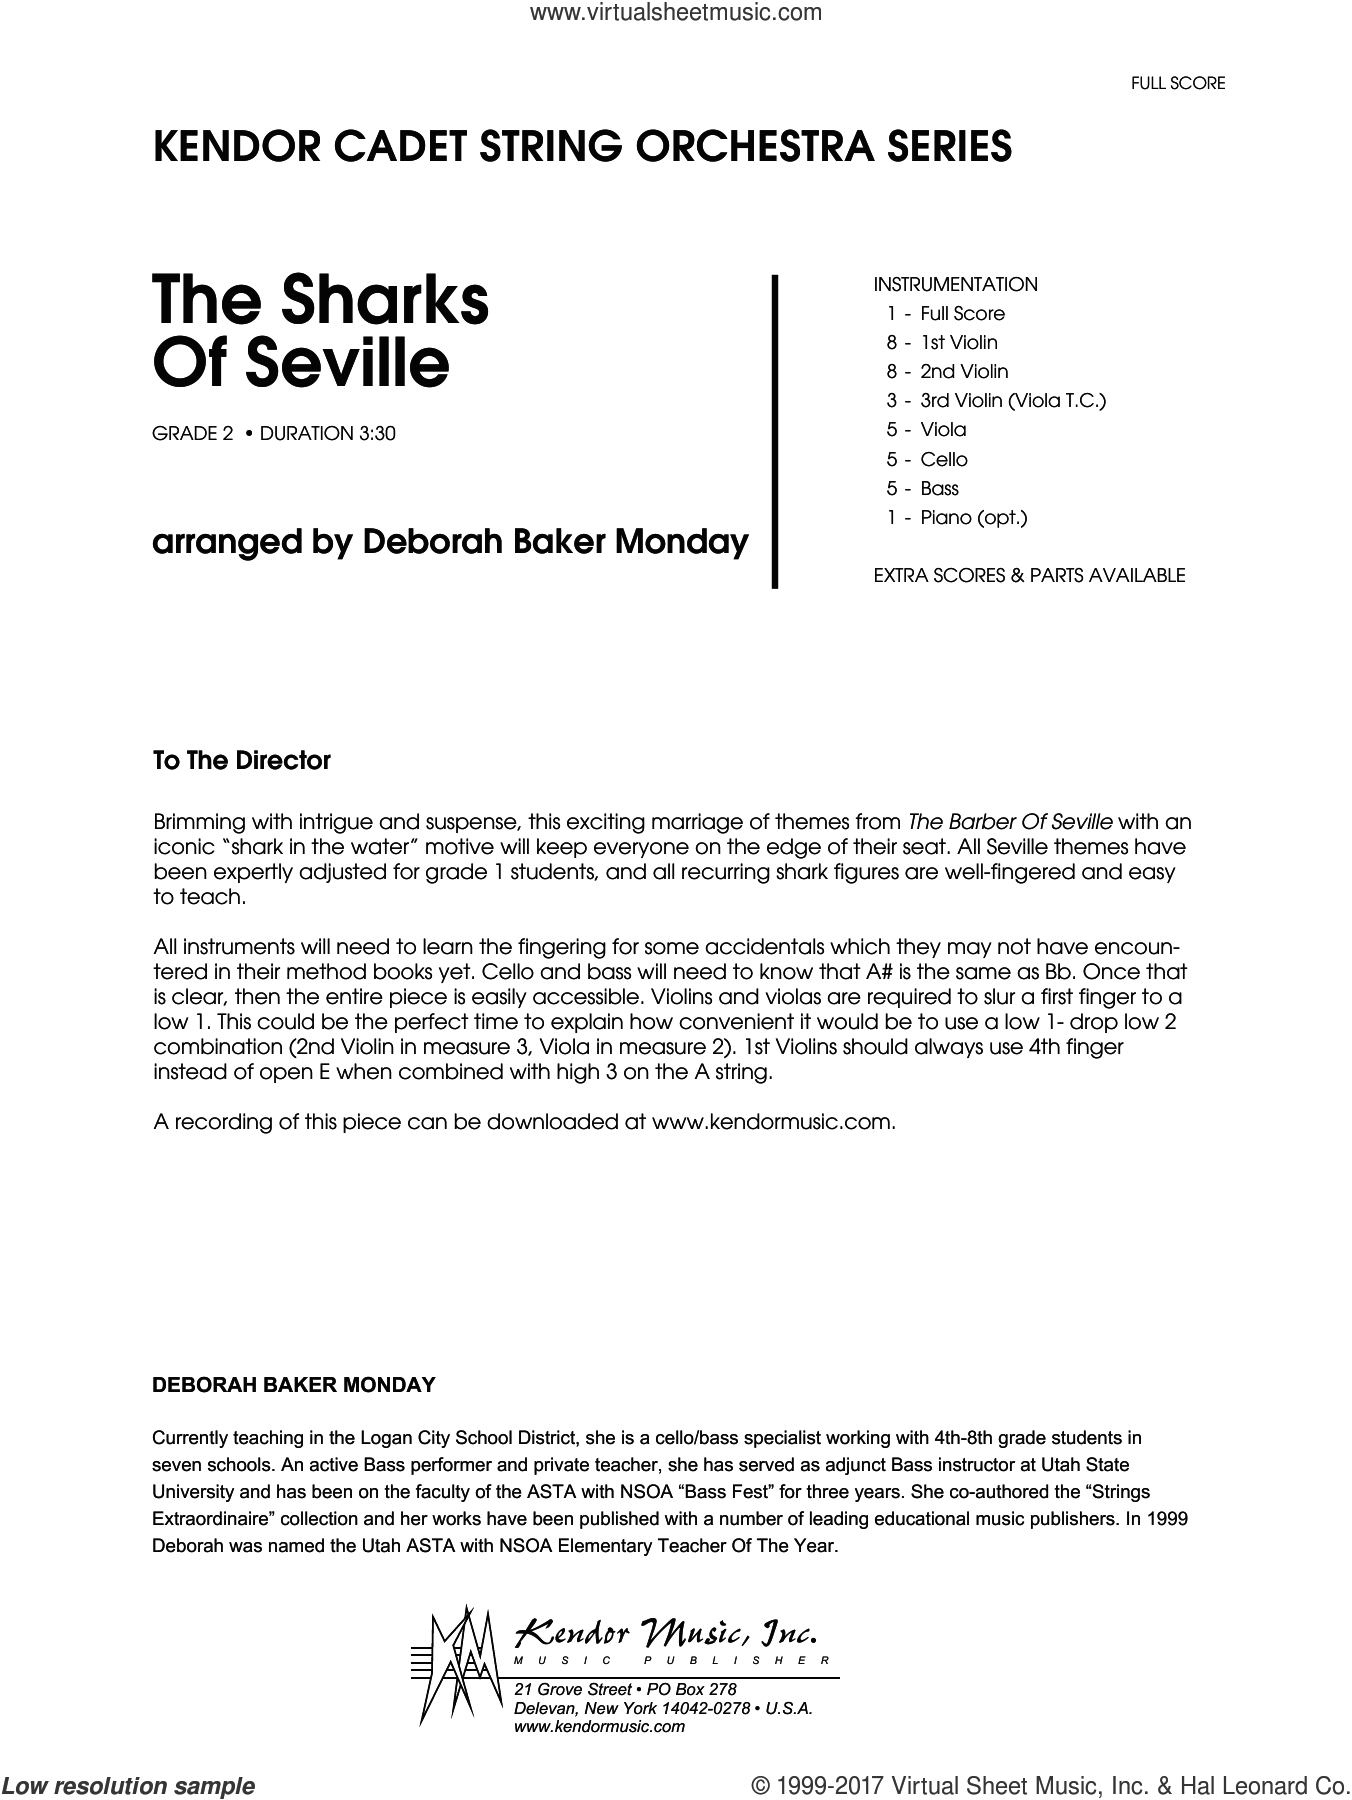 Monday - The Sharks Of Seville sheet music (complete collection) for  orchestra